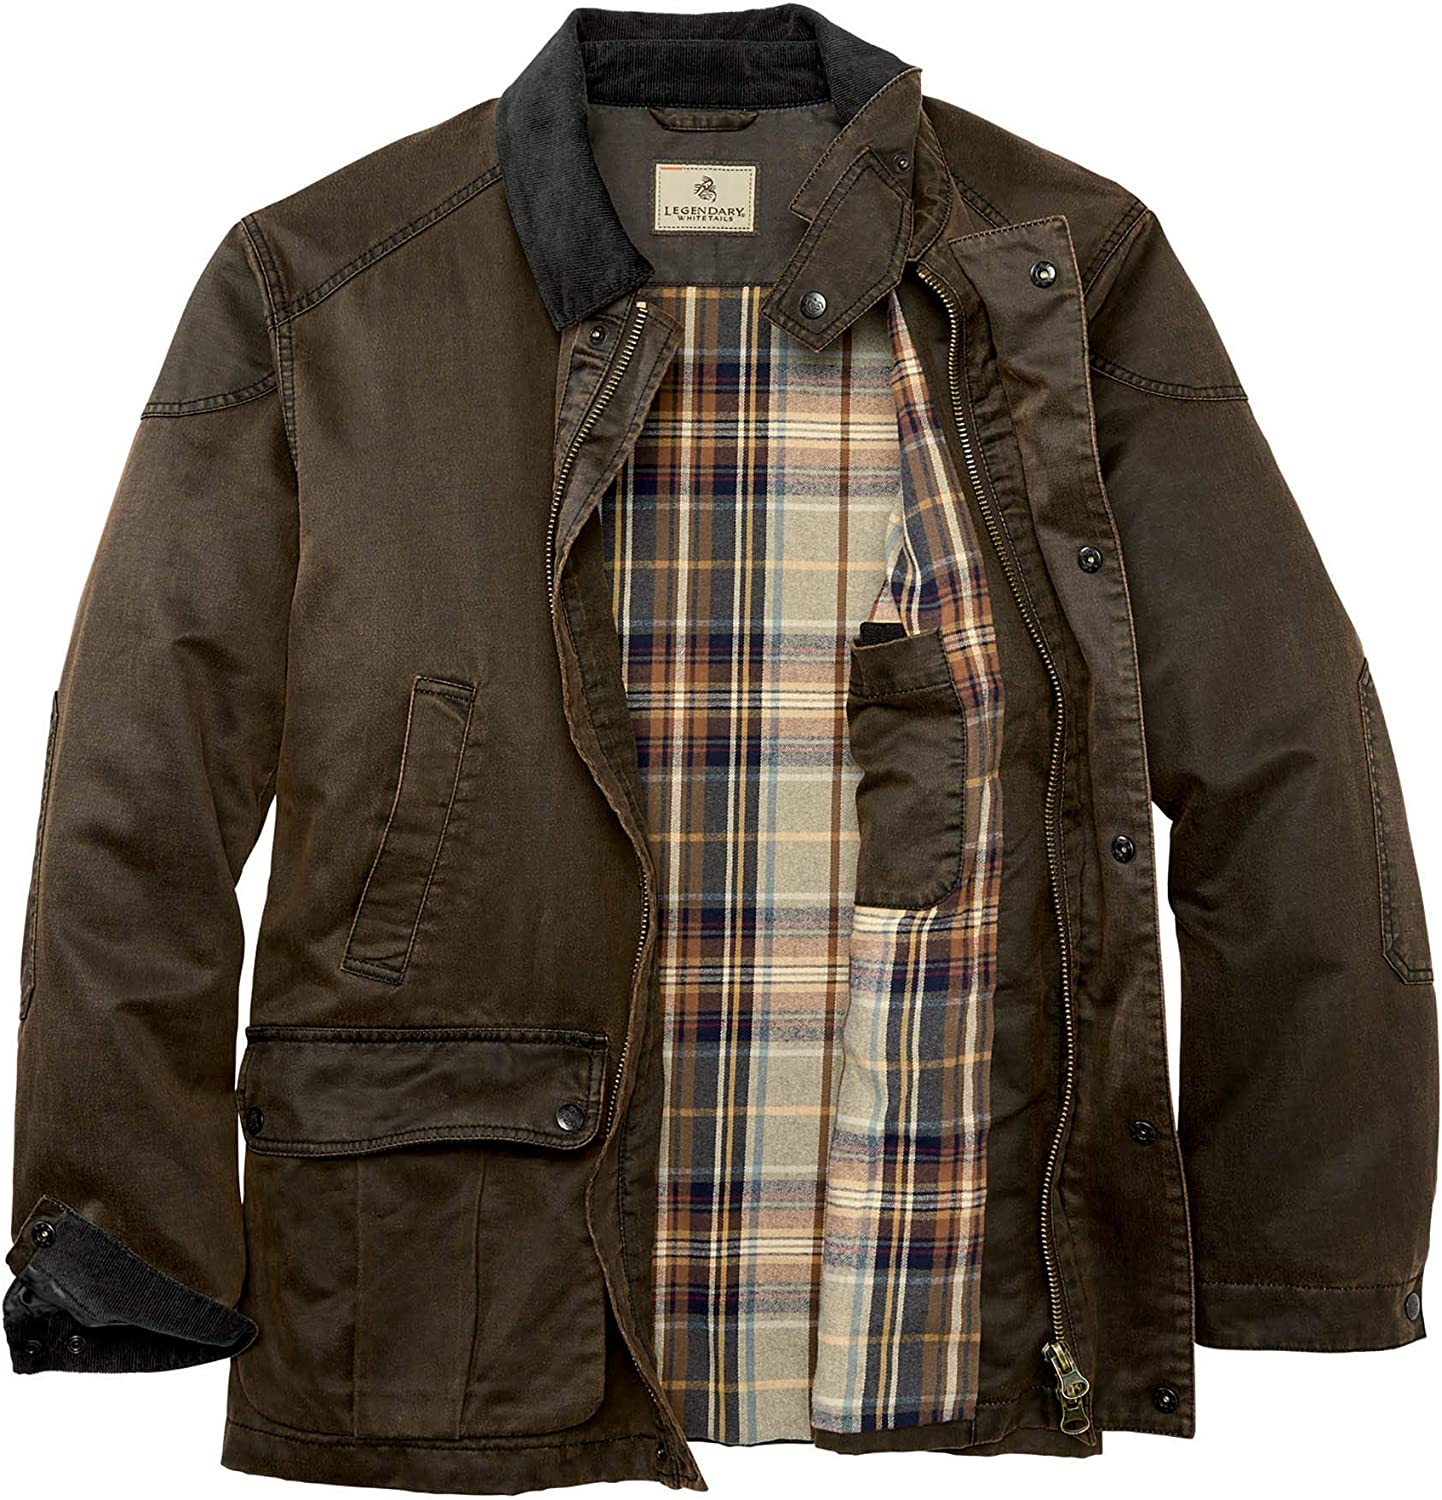 Legendary Whitetails mens Journeyman Field Guide Jacket Flannel Lined Snap Closure Regular Fit